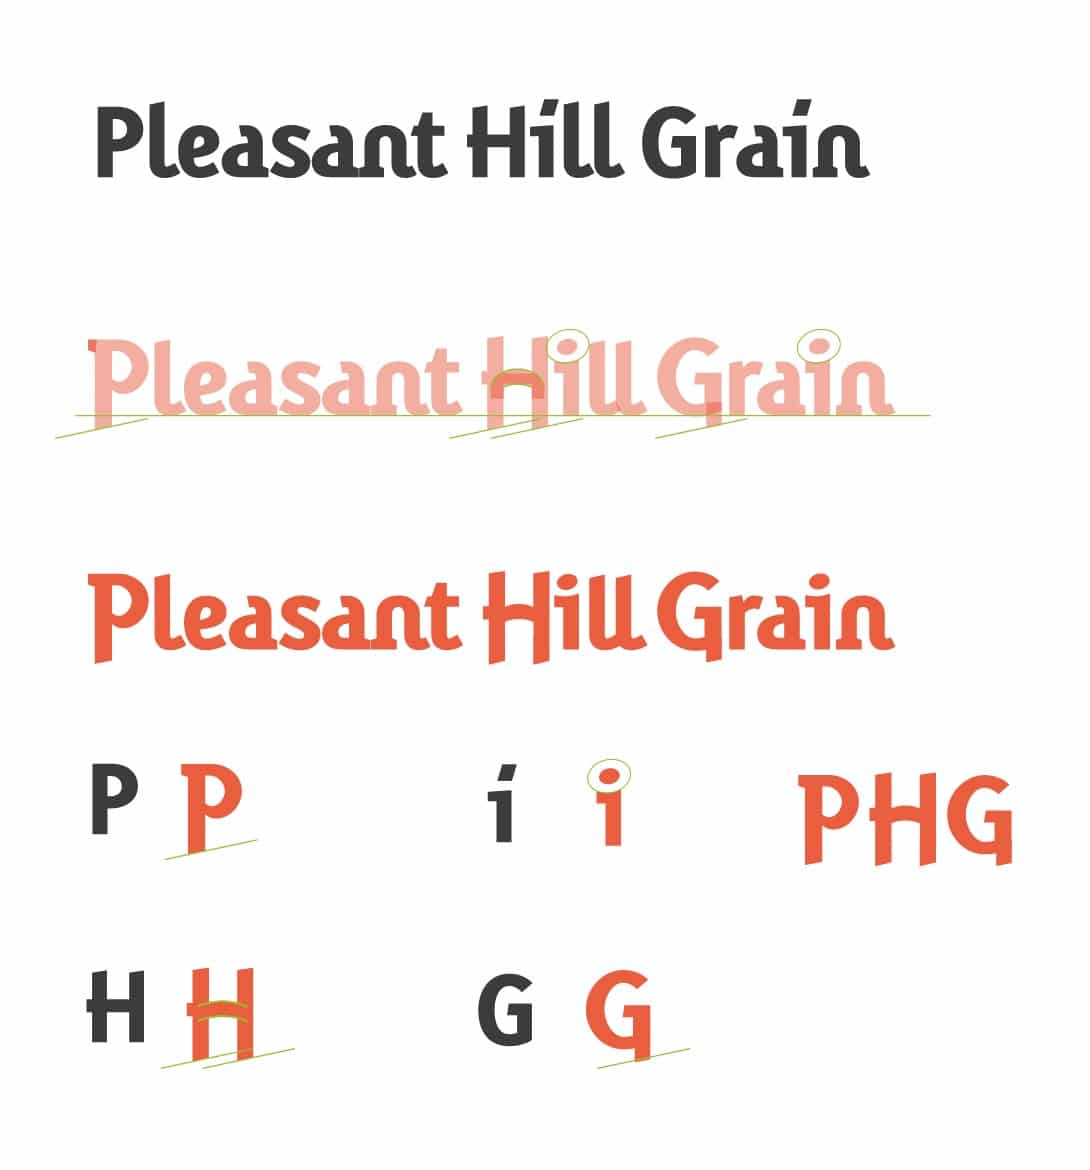 Pleasant Hill Grain Logo Redesigned by The Logo Smith